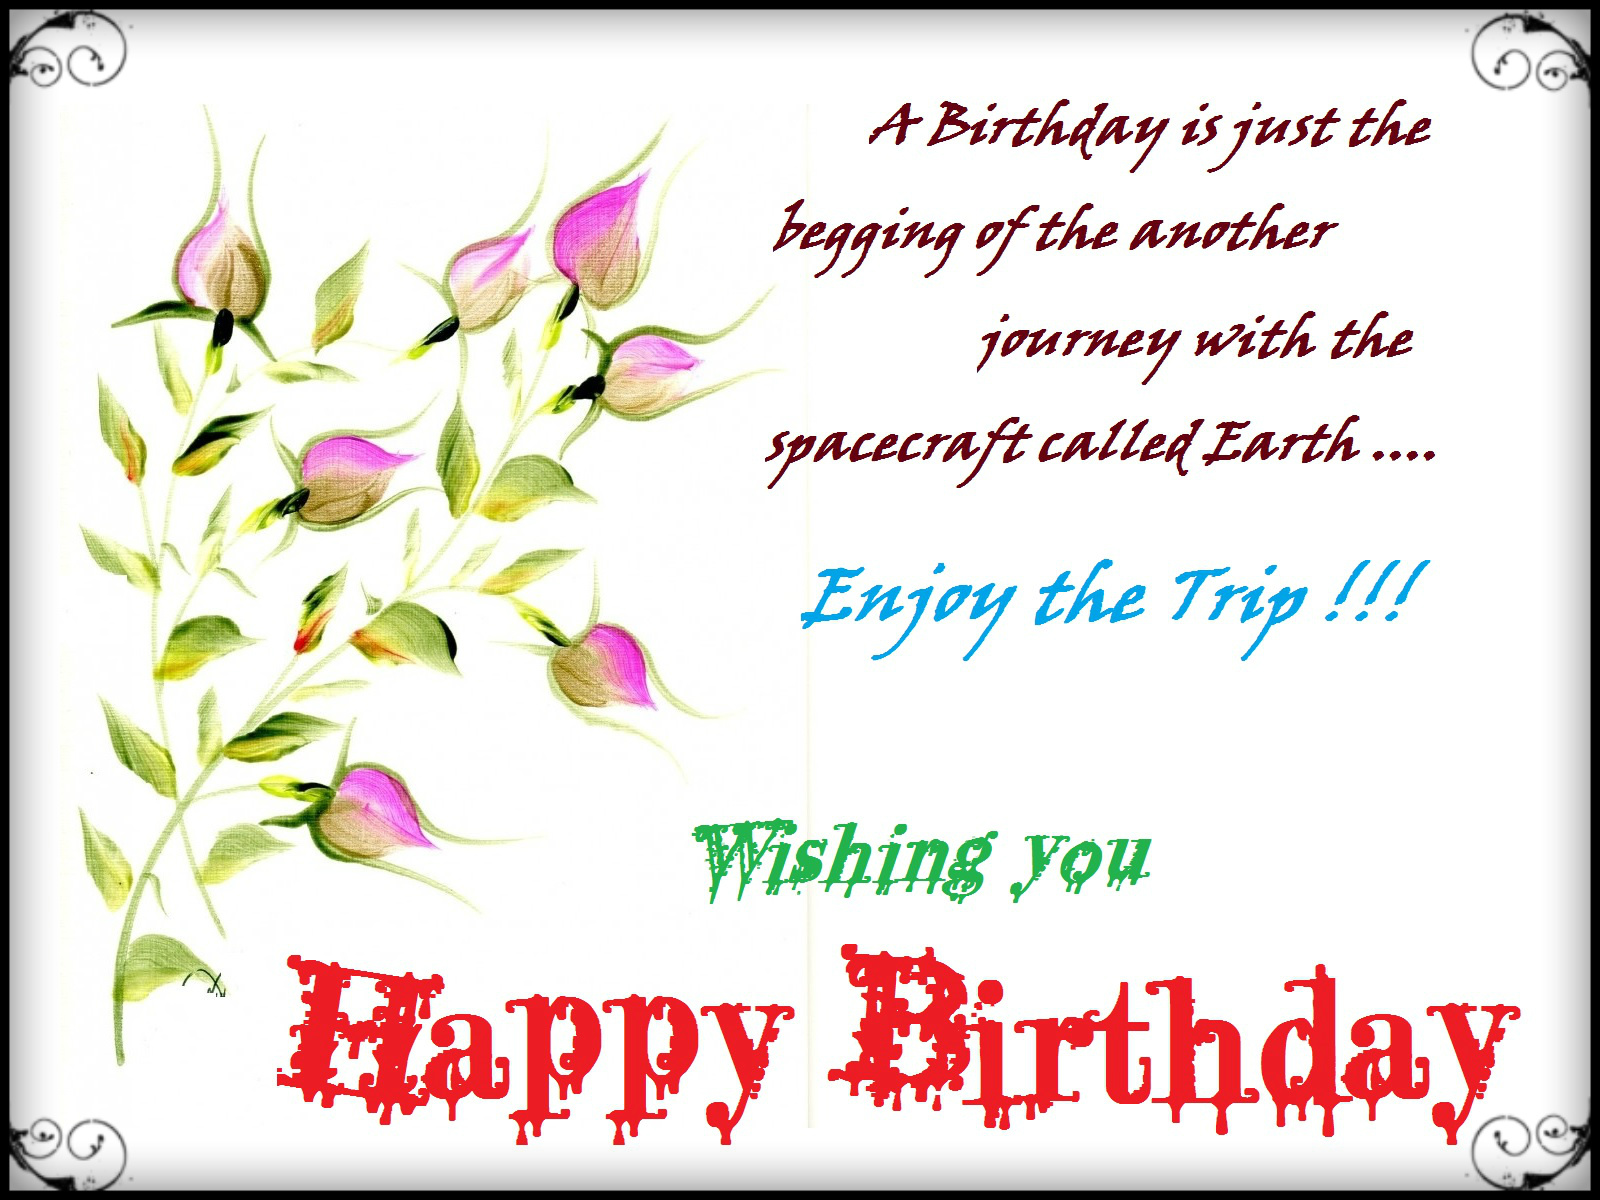 Happy+birthday+wishes+messages+cards+ +90jpg